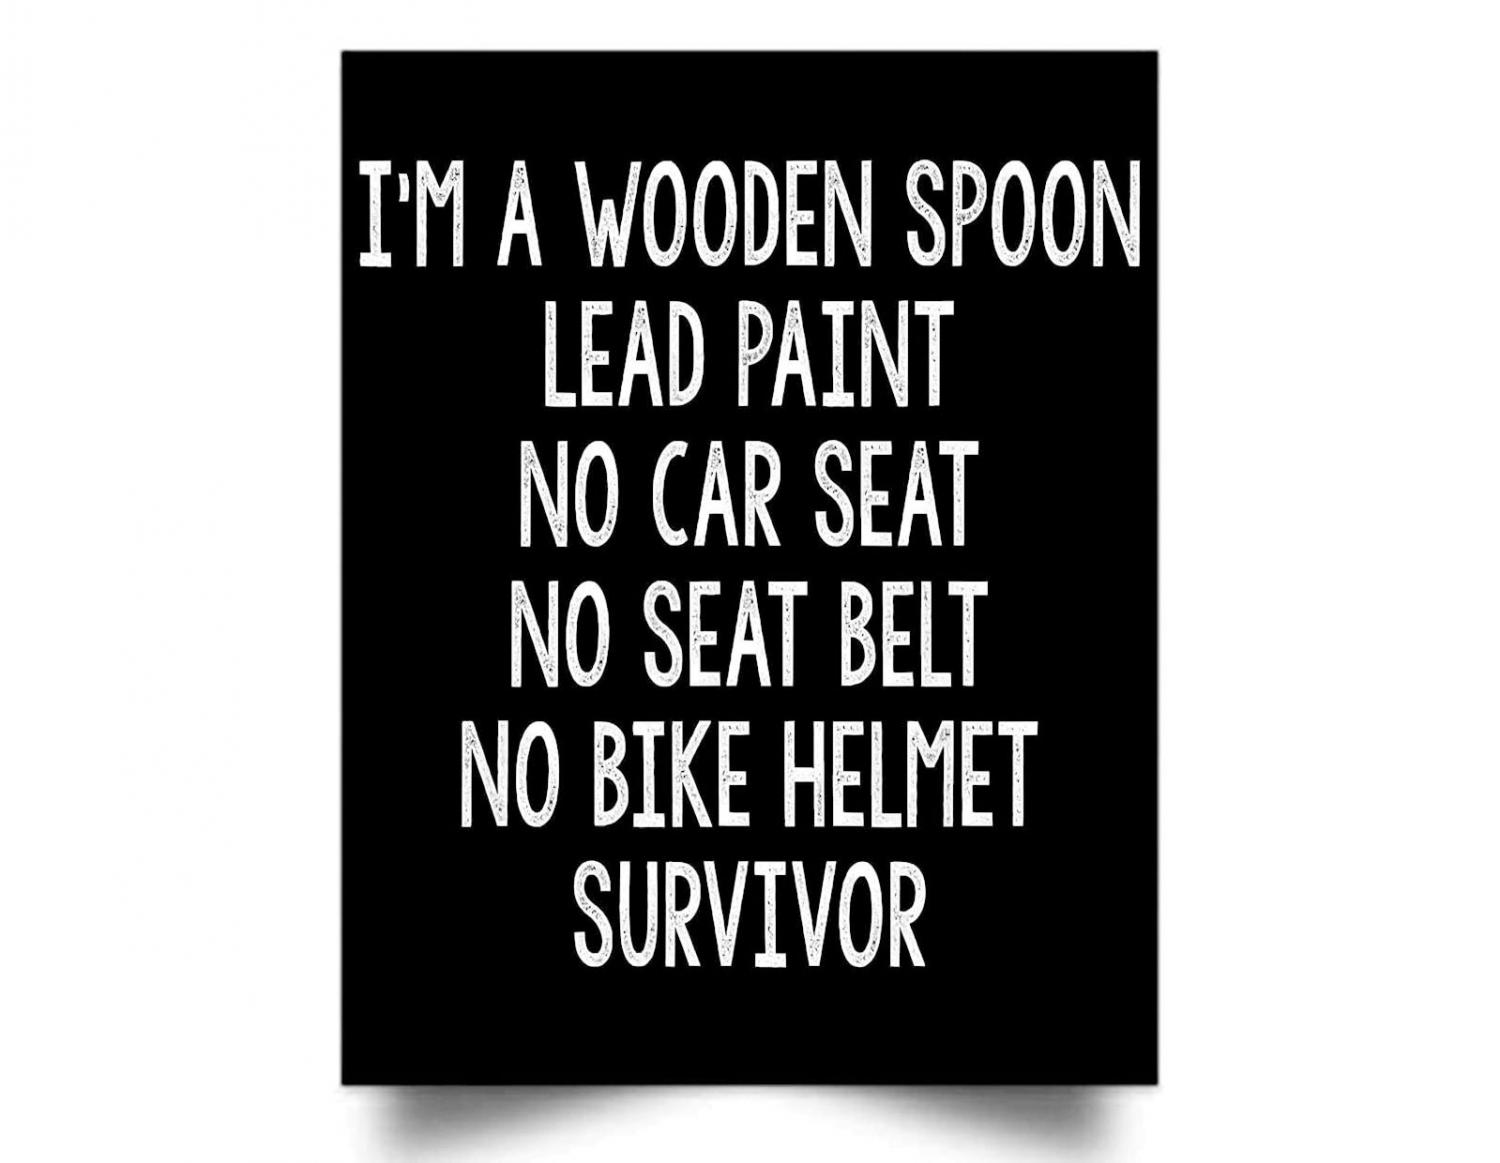 I'm A Wooden Spoon Lead Paint No Car Seat No Helmet Bed Of Truck Garden Hose Drinking Survivor